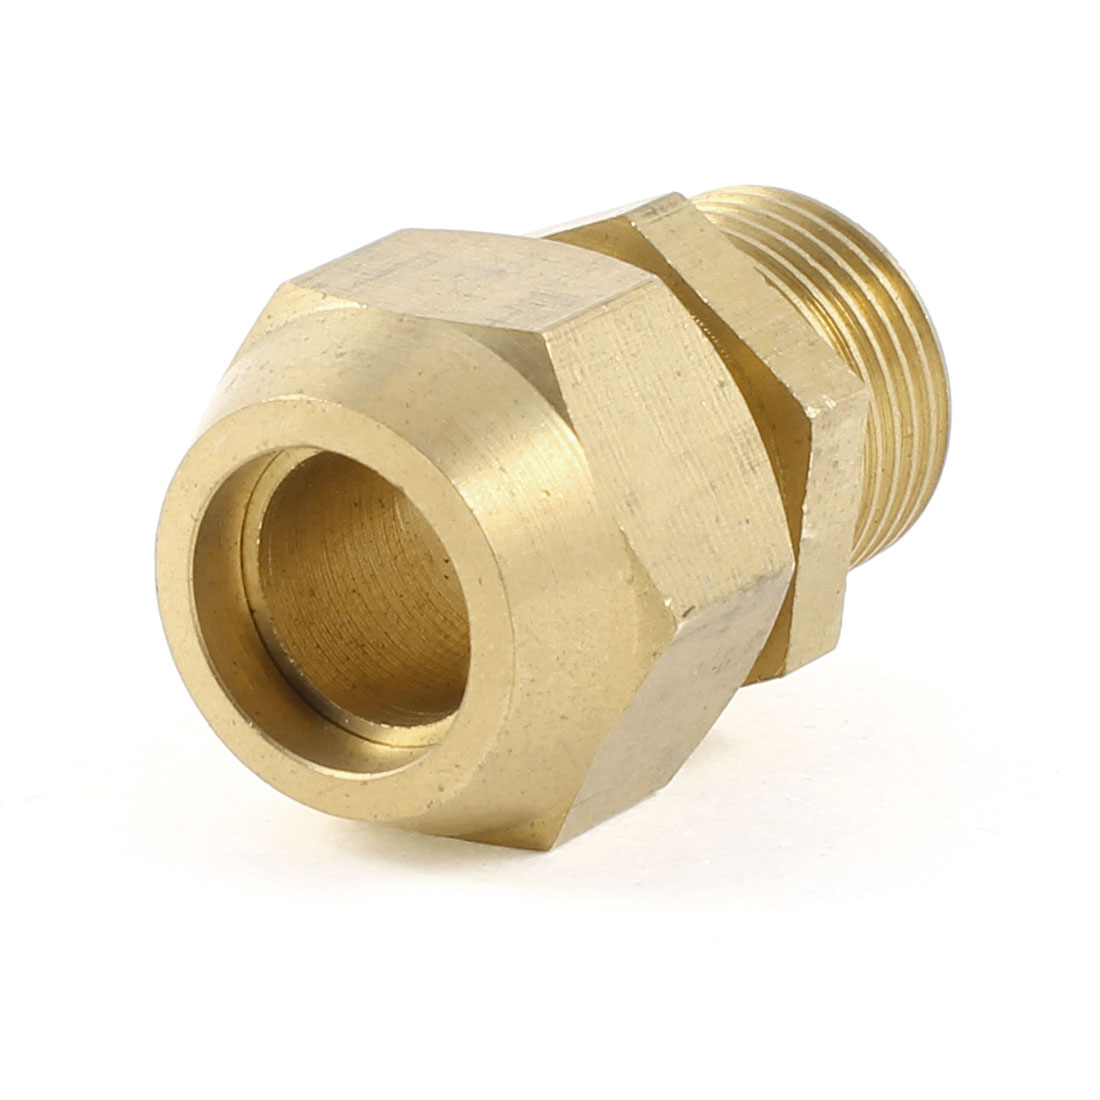 "3/8"" PT Male Threaded Hex Bushing Hydraulic Fitting Gold Tone for 12mm Tube Pipe"